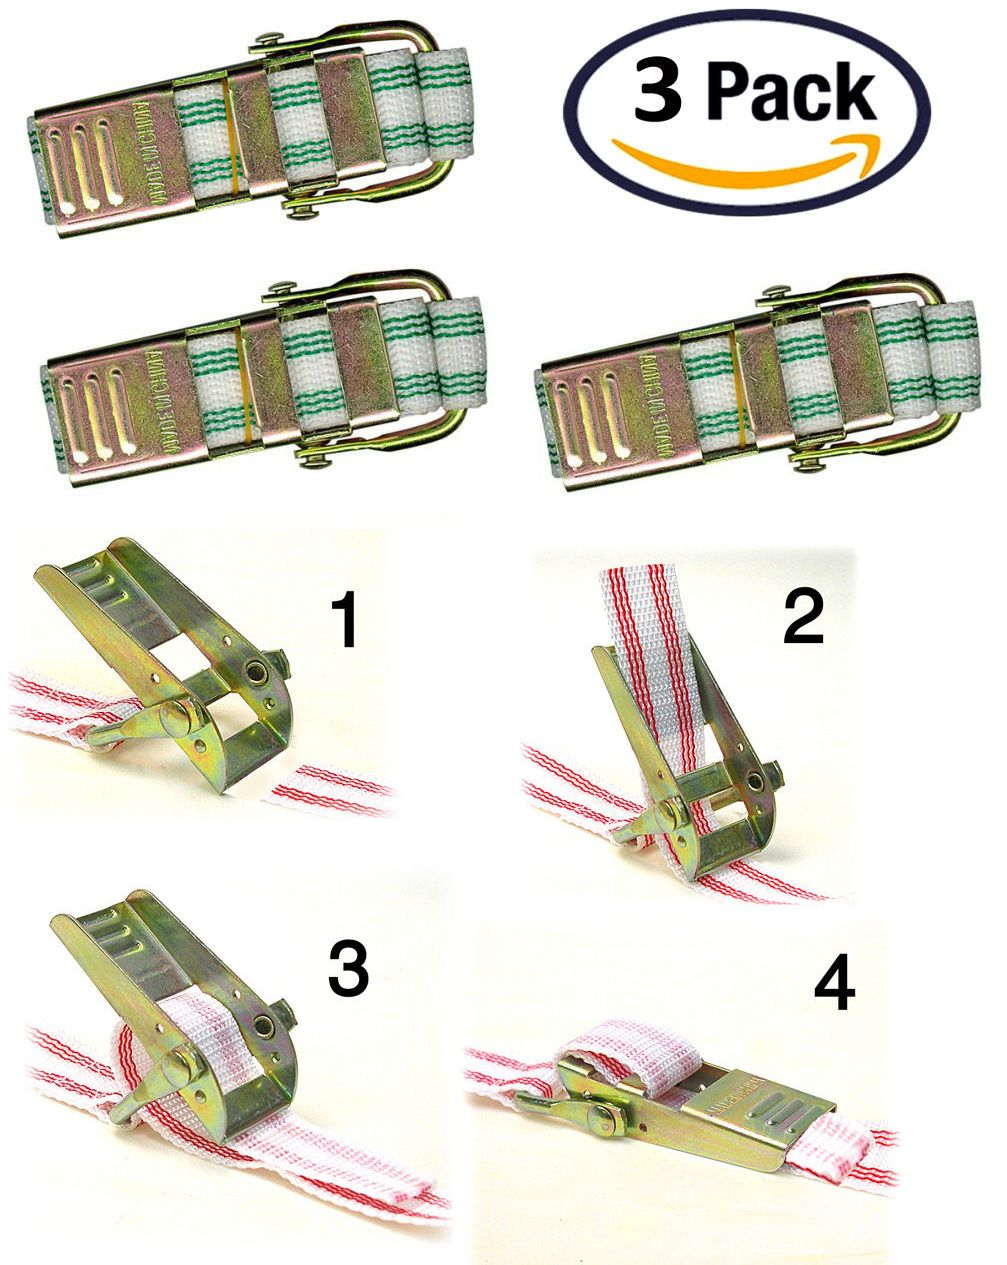 Green Creative Hobbies BST4 Banding Straps For Plaster Molds And Other Banding Applications 4 Feet Long Pack of 3 Straps